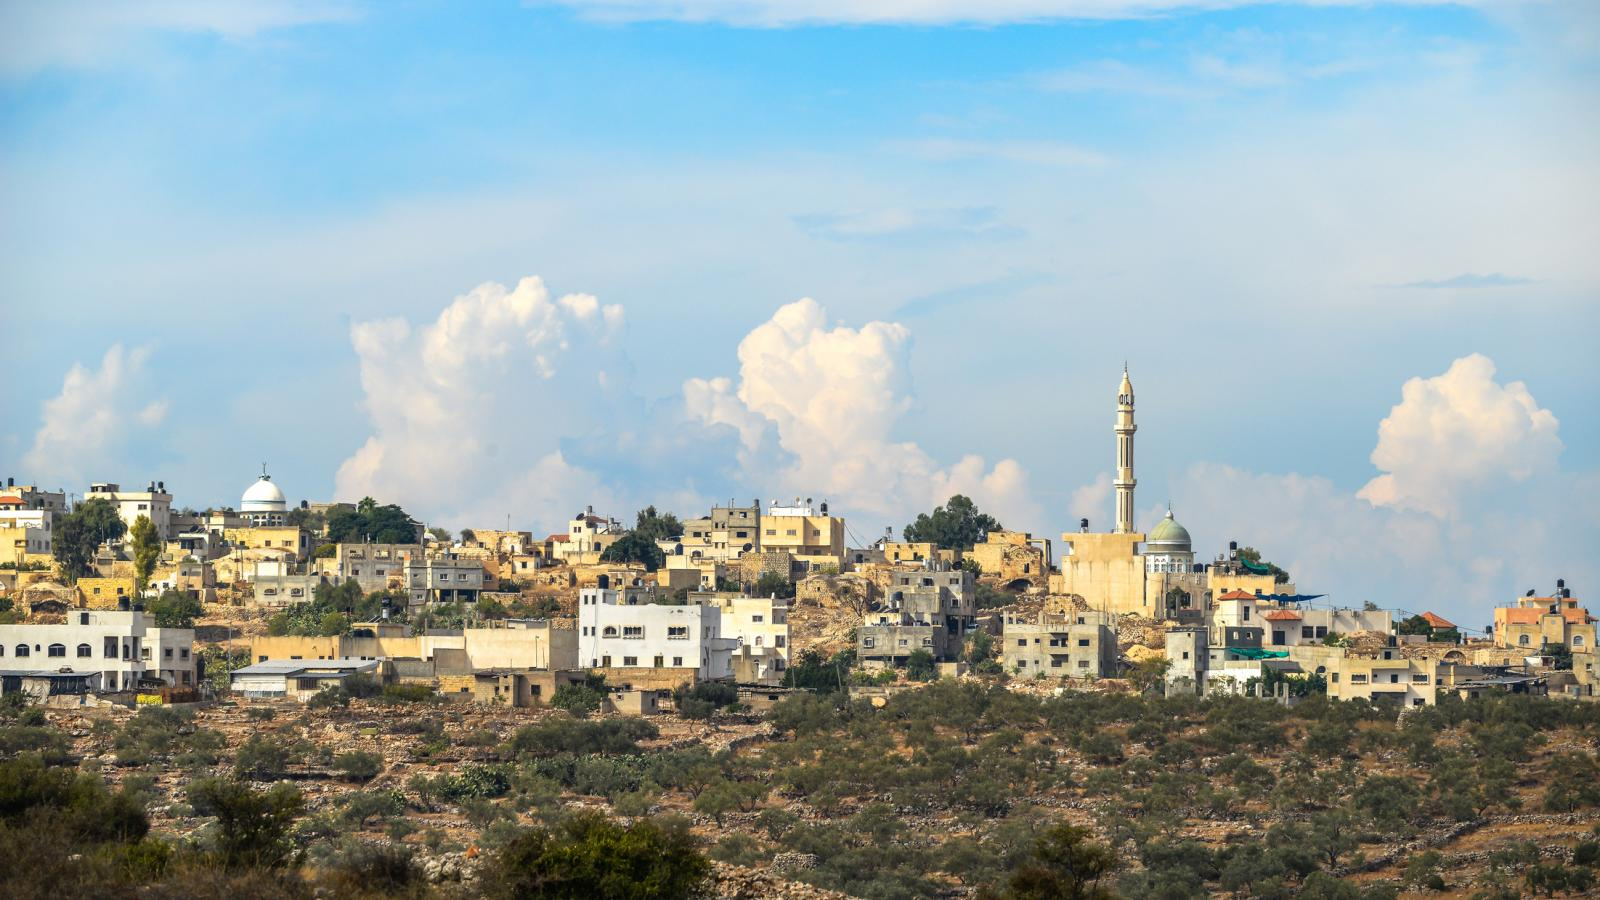 The town of Rantis in the West Bank